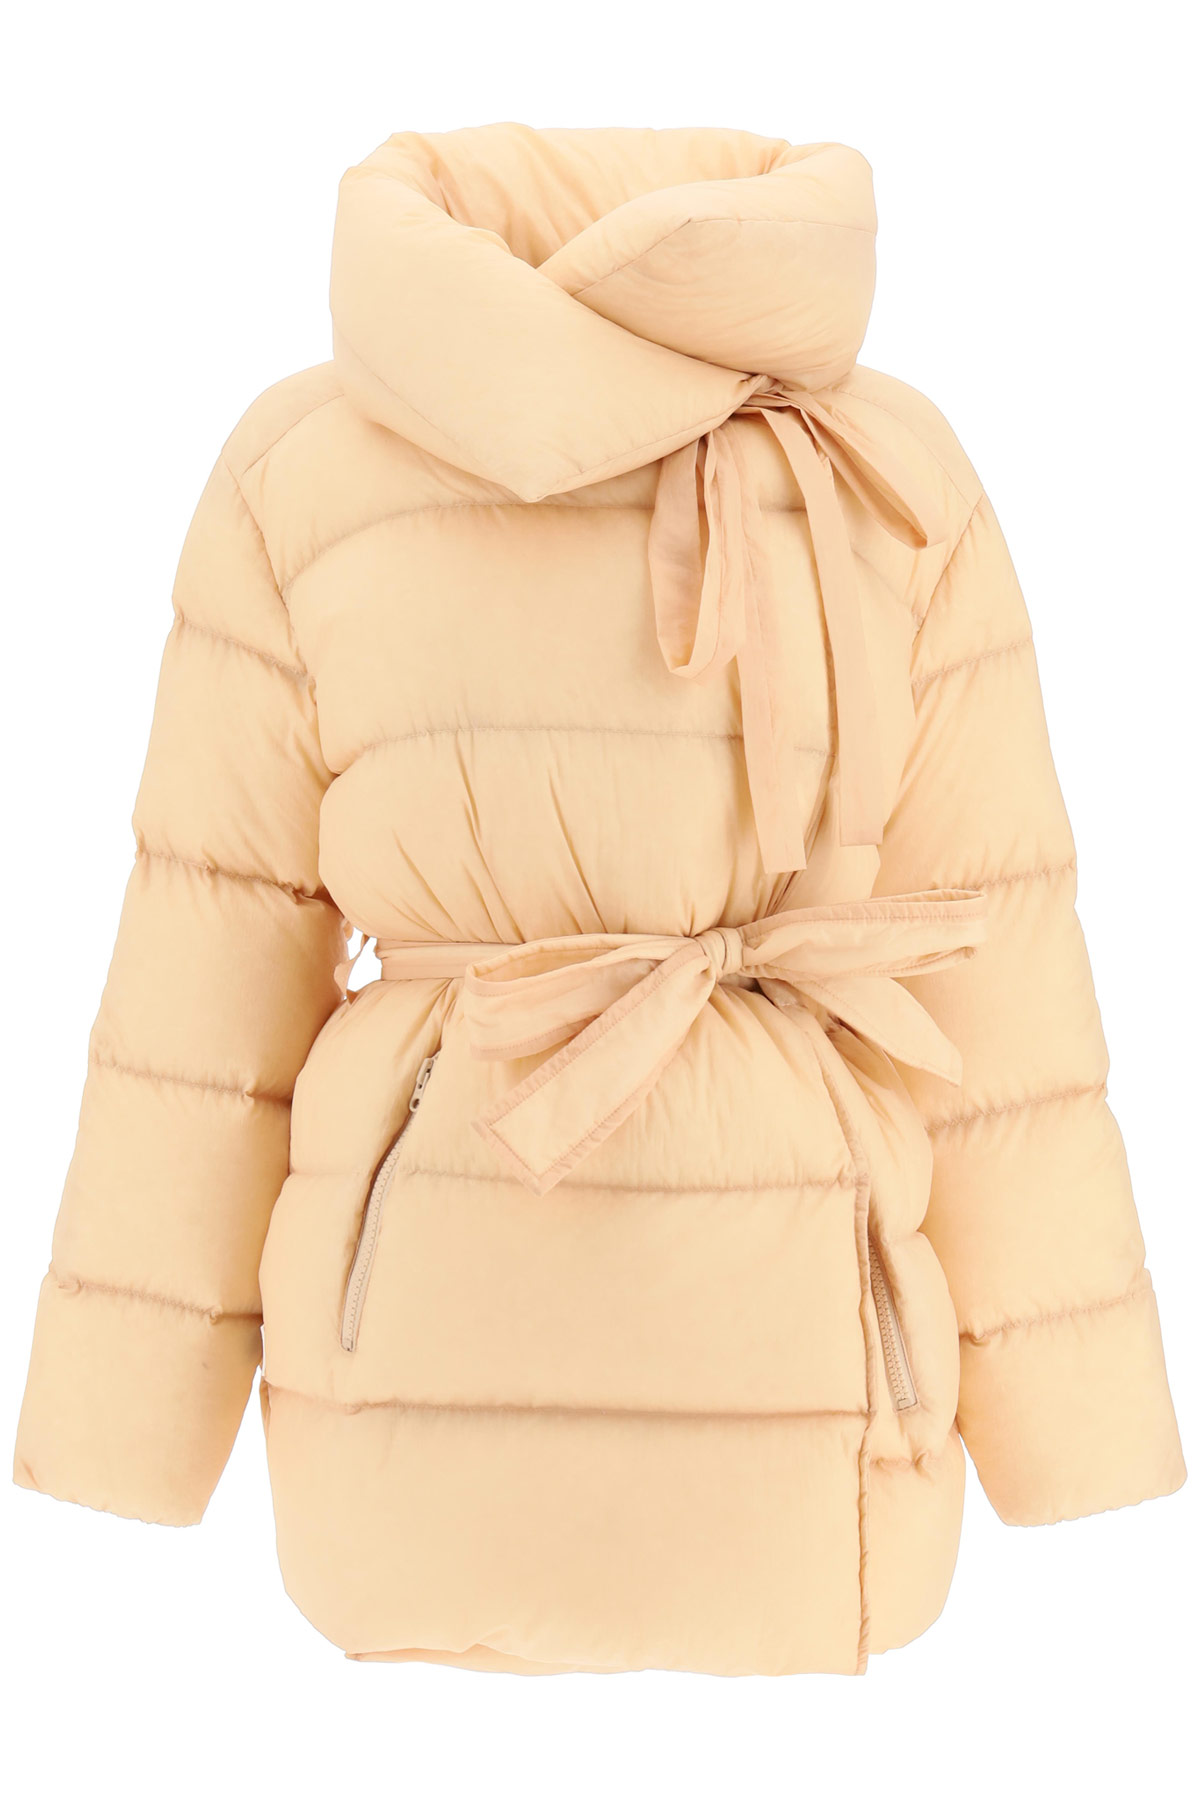 BACON PUFFA MIDI DOWN JACKET S Beige, Yellow Technical